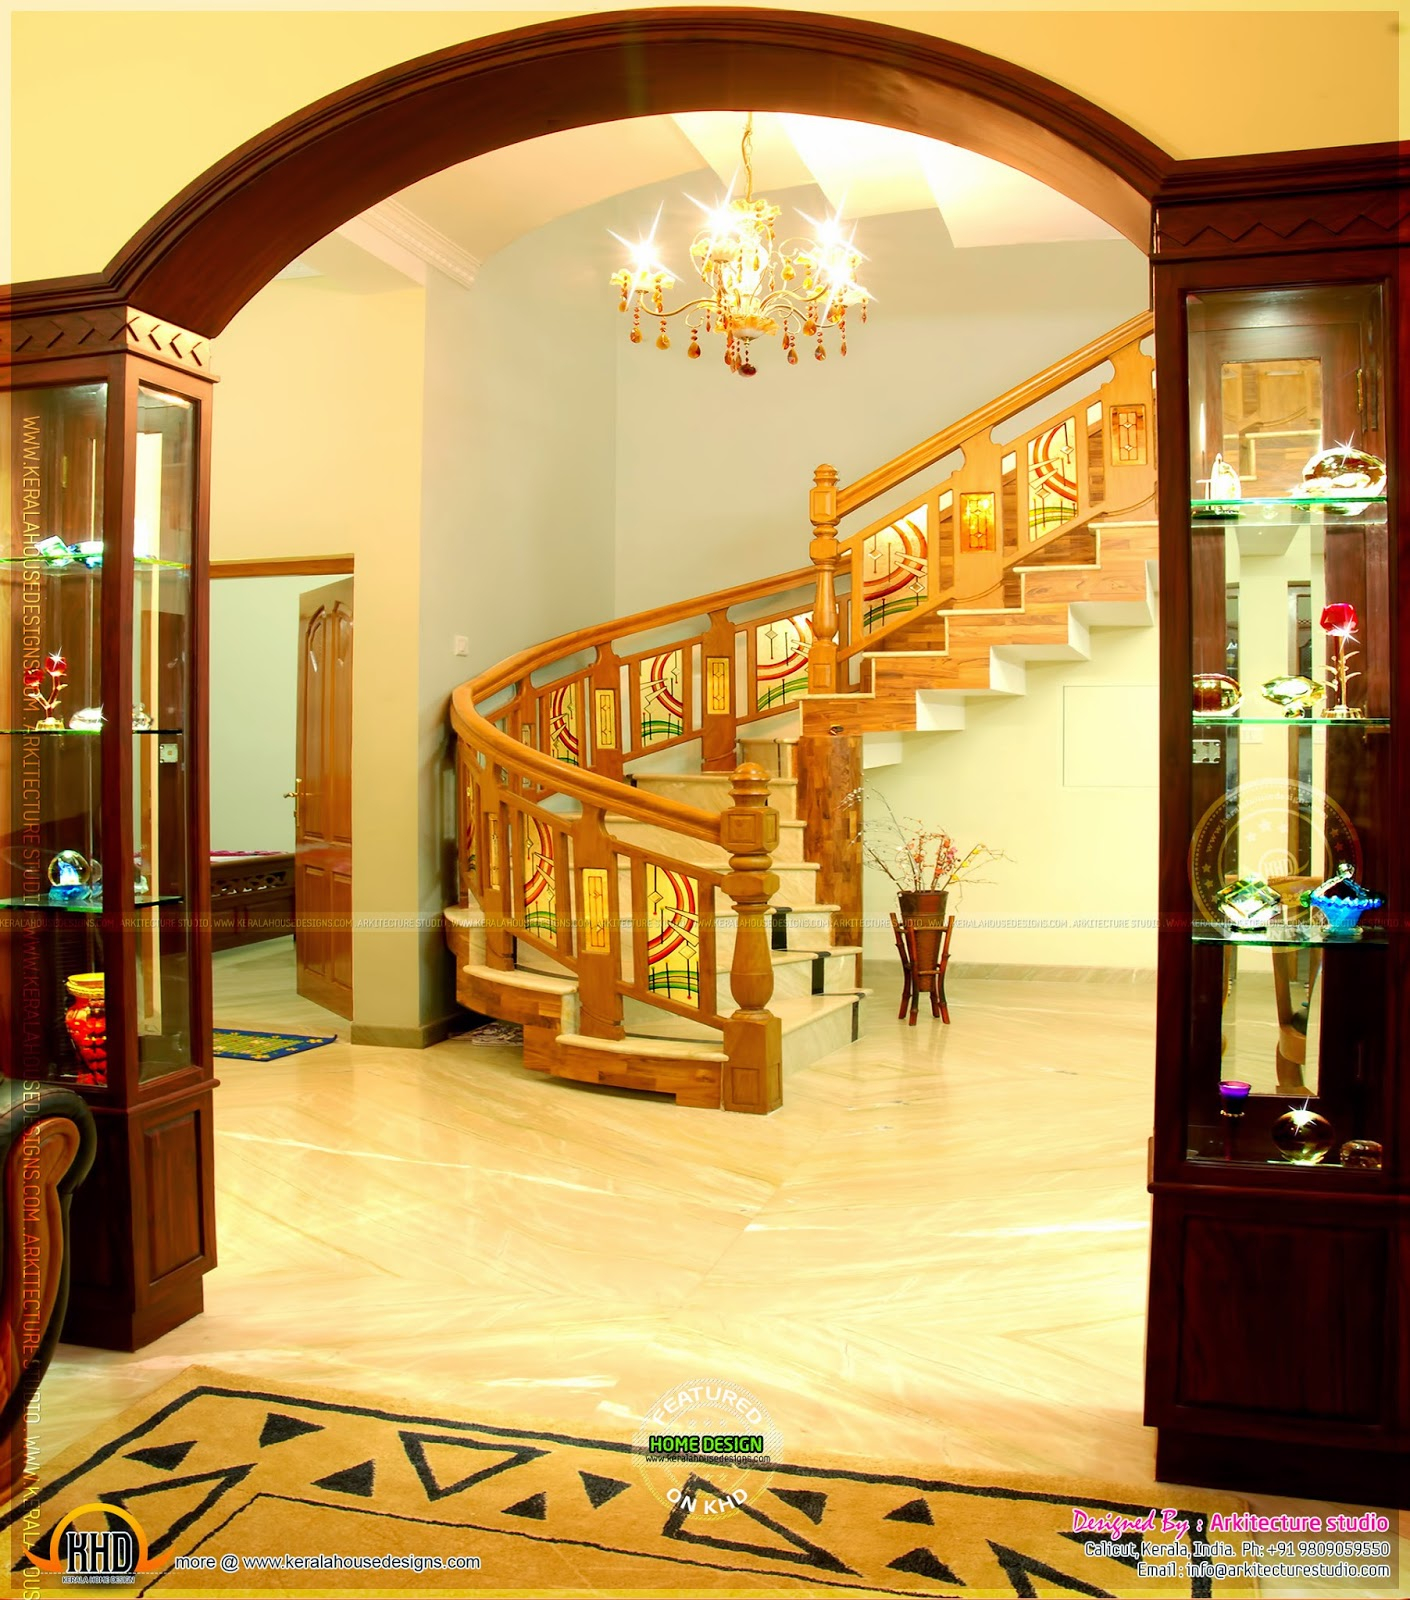 Real house in kerala with interior photos kerala home Interior houses